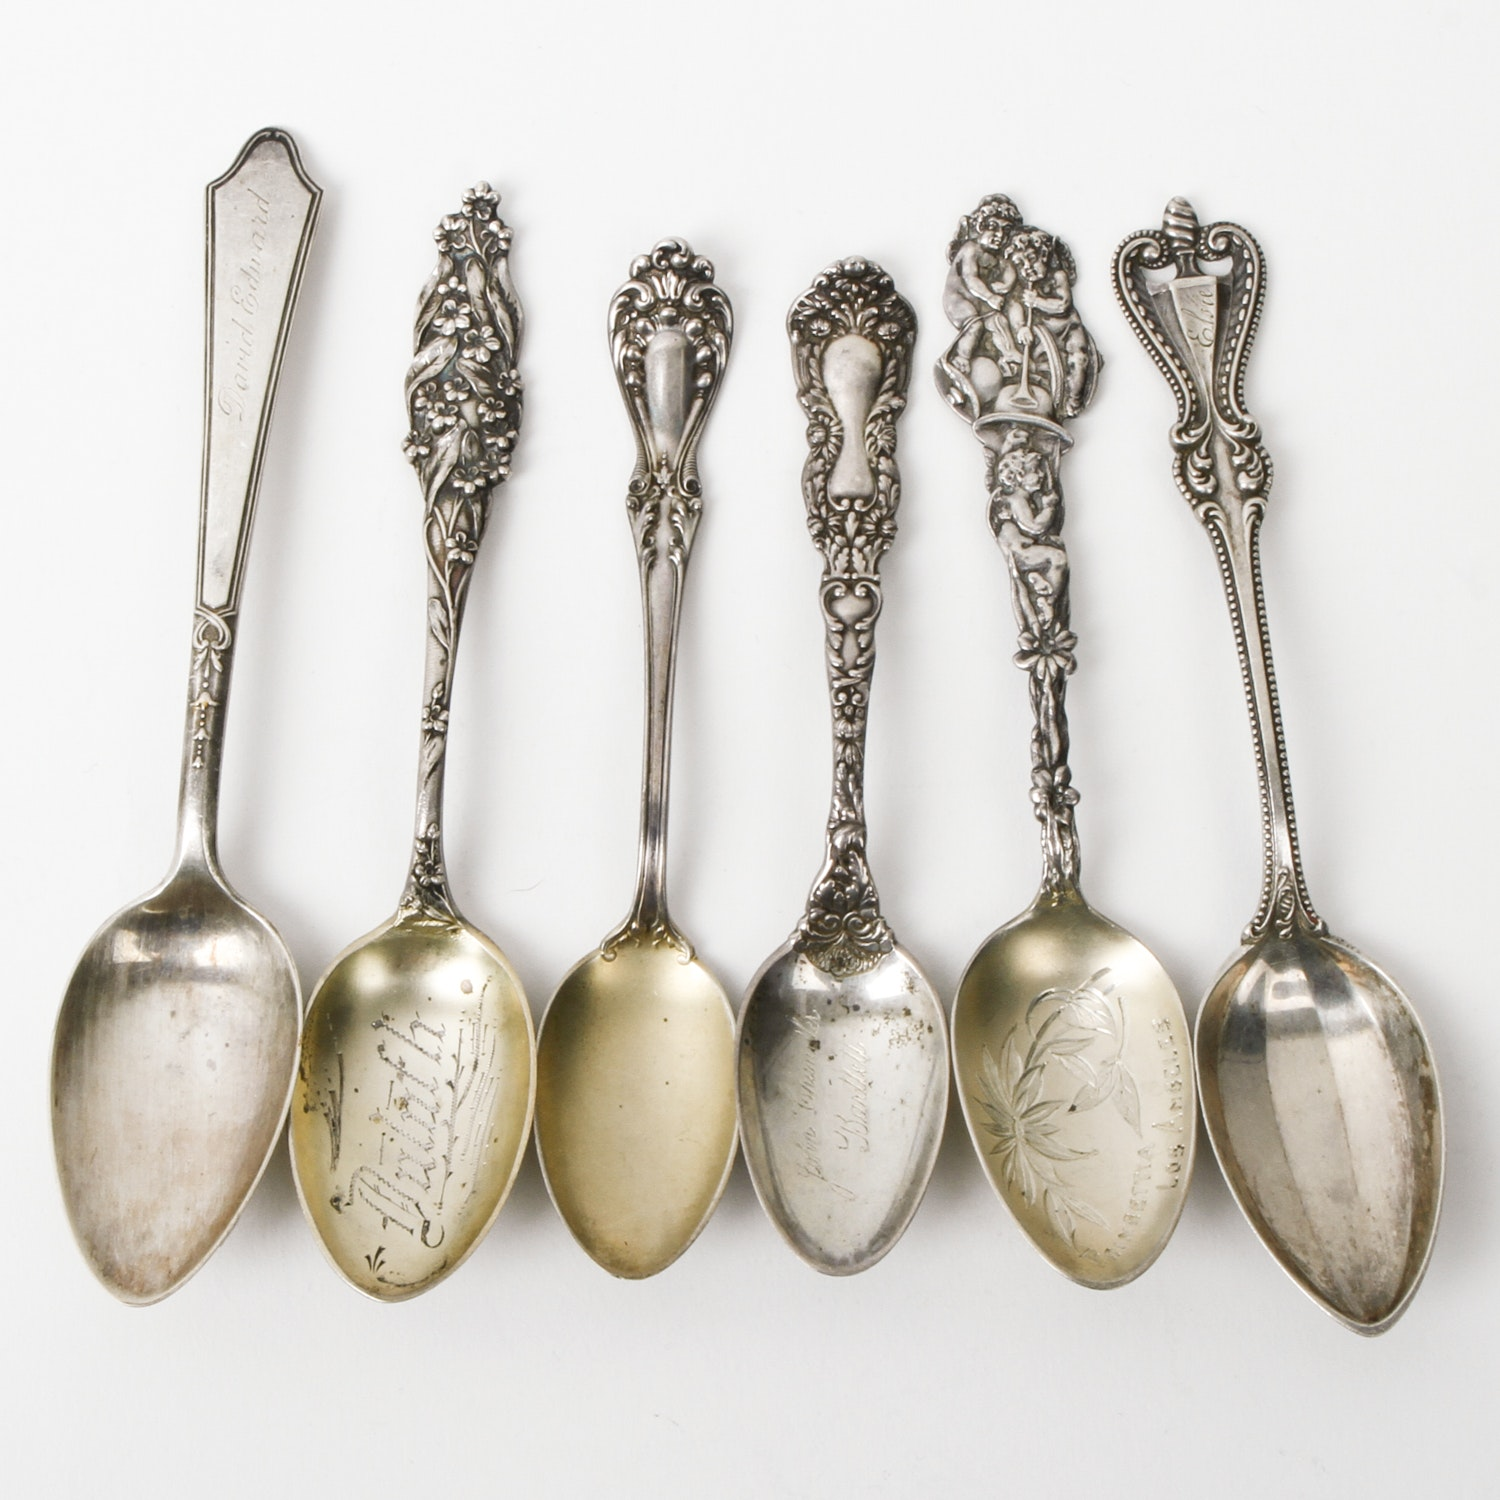 Assortment of Vintage and Antique Sterling Silver Spoons